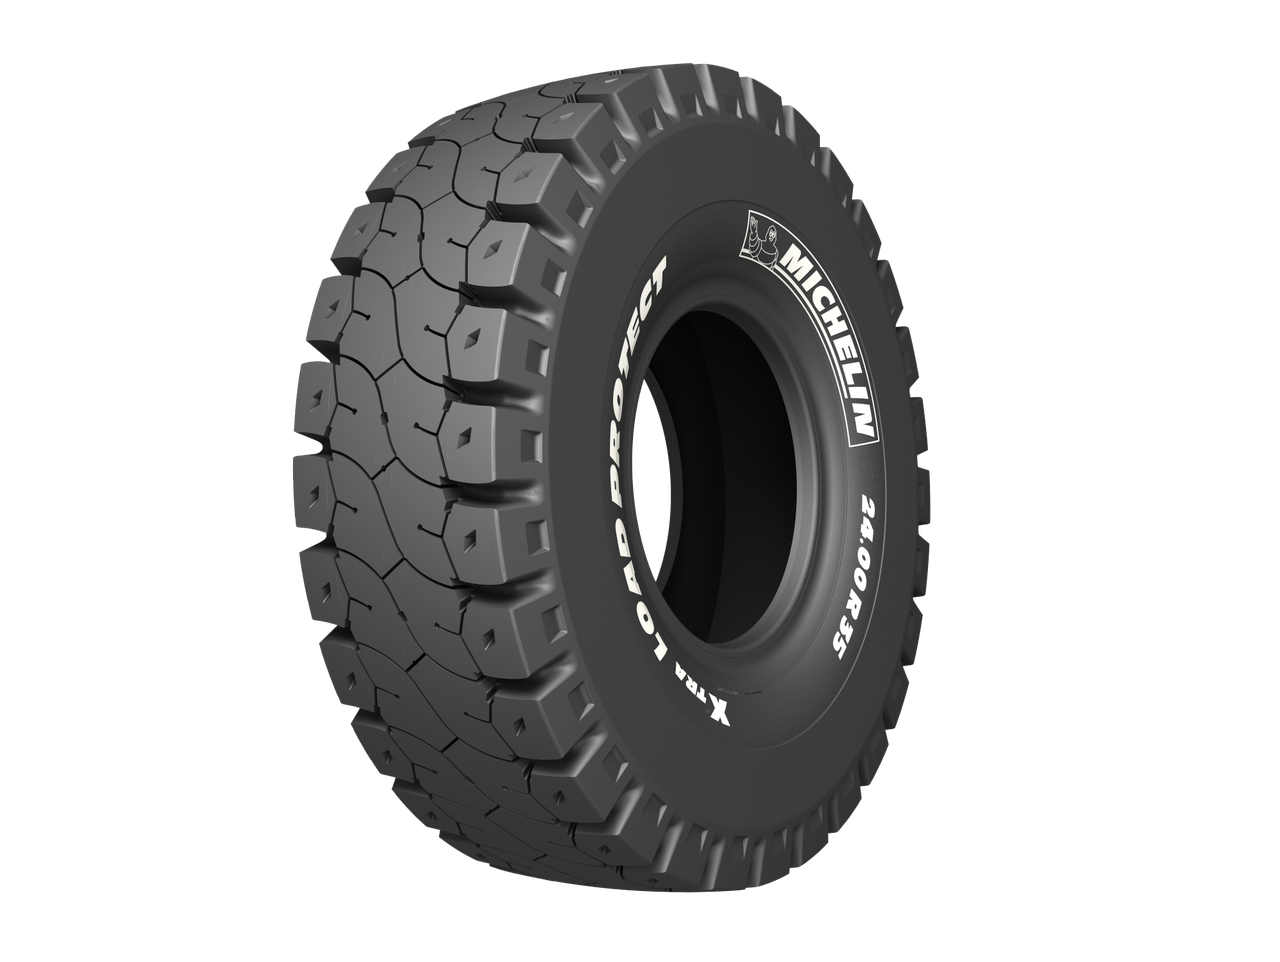 Шина 24.00 R 35 Michelin XTRA LOAD PROTECT B